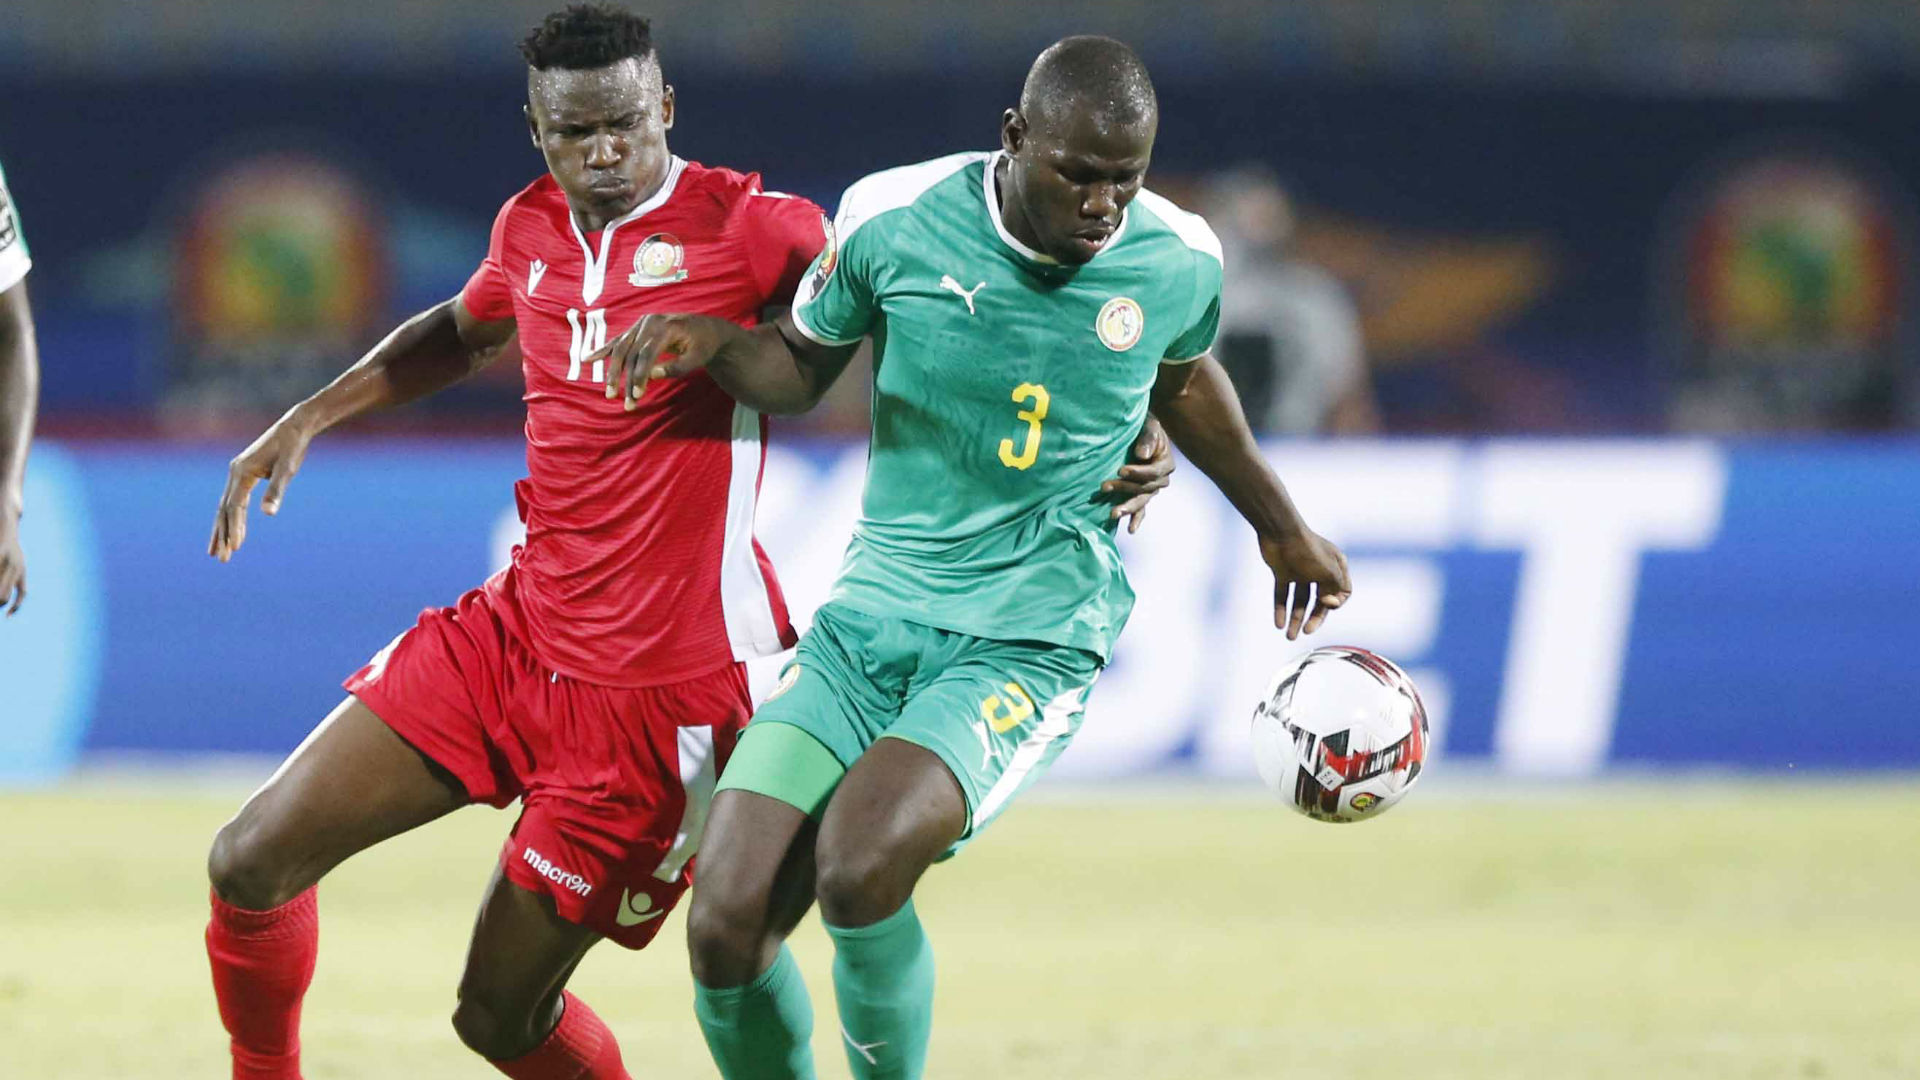 REVEALED: What Harambee Stars players were paid before Afcon 2019 finals